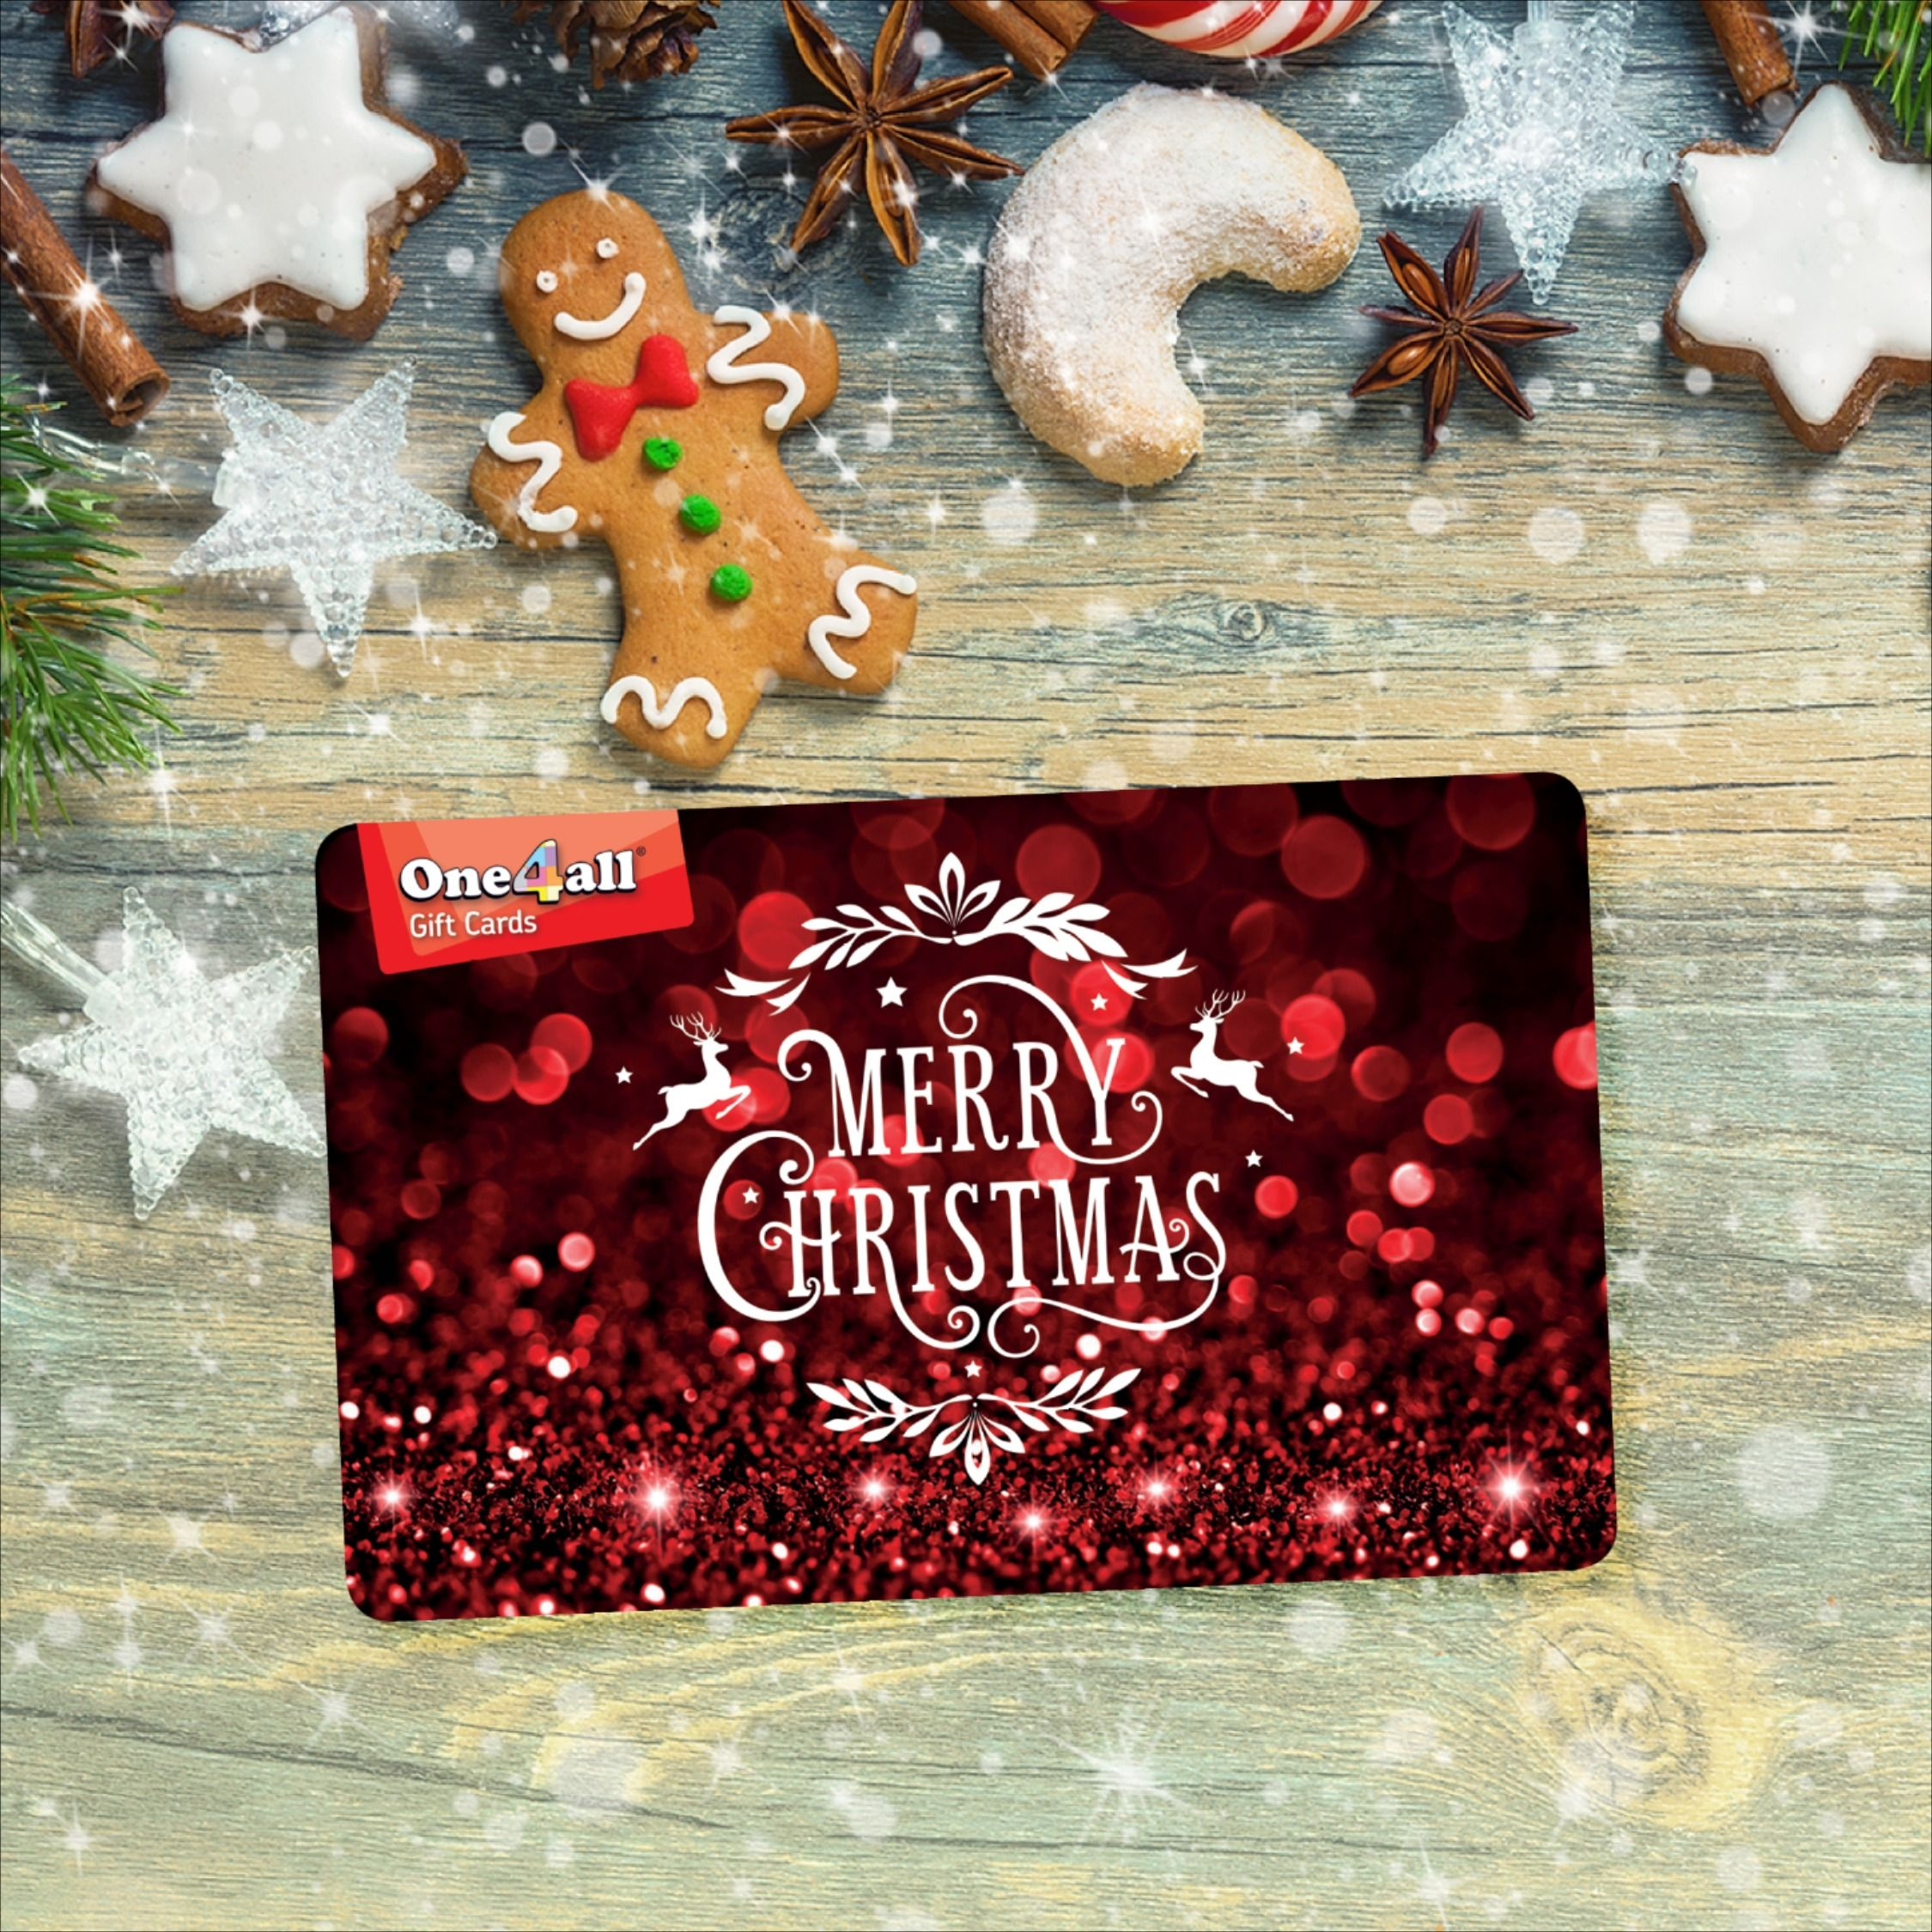 Looking For The Perfect Gift For Friends And Family This Christmas The One4all Gift Card Is Accepted In Over 55 000 Out Gift Card Design Staff Gifts Gift Card